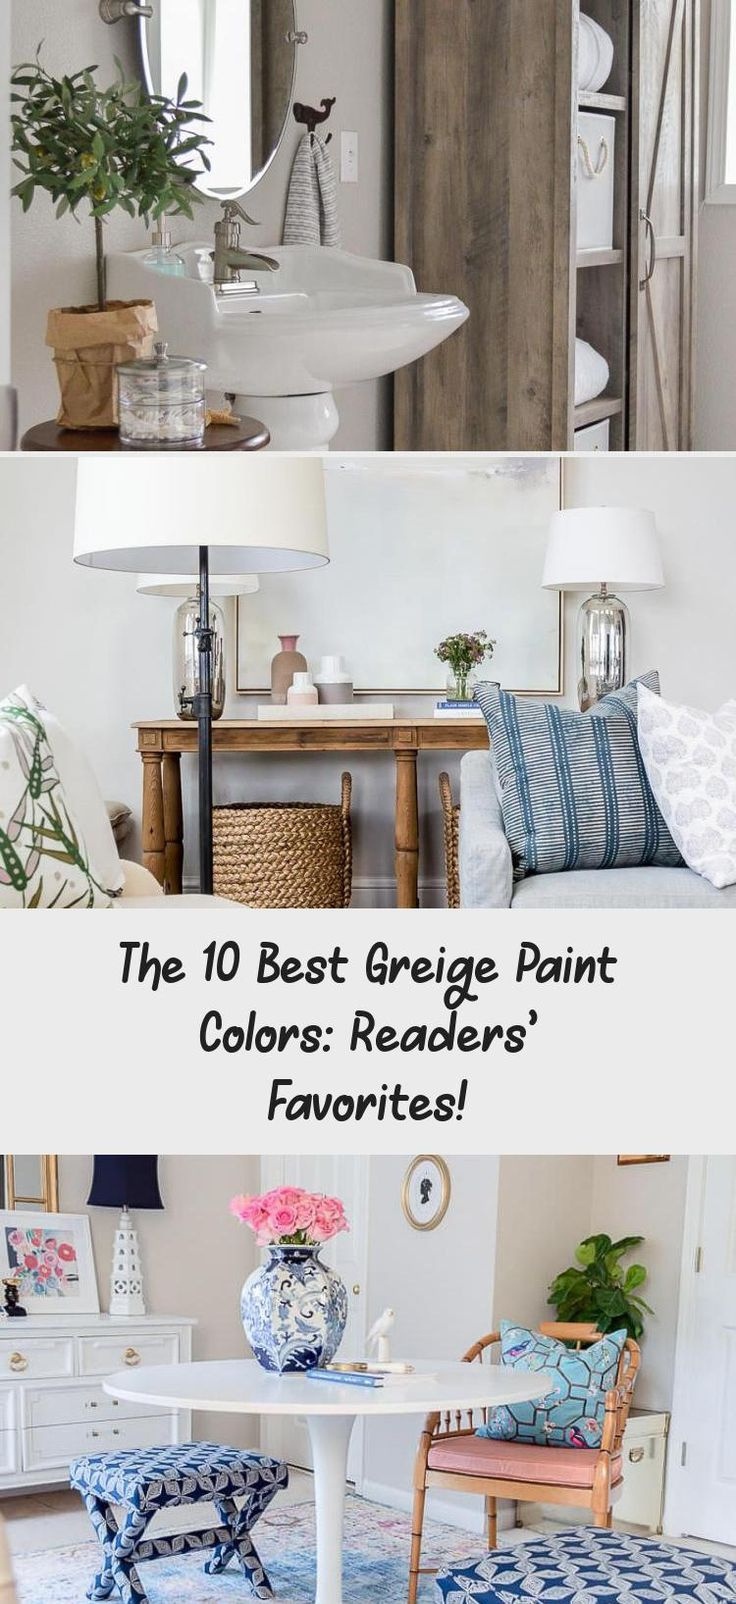 the 10 best greige paint colors readers favorites 2020 on 10 most popular paint colors id=98553